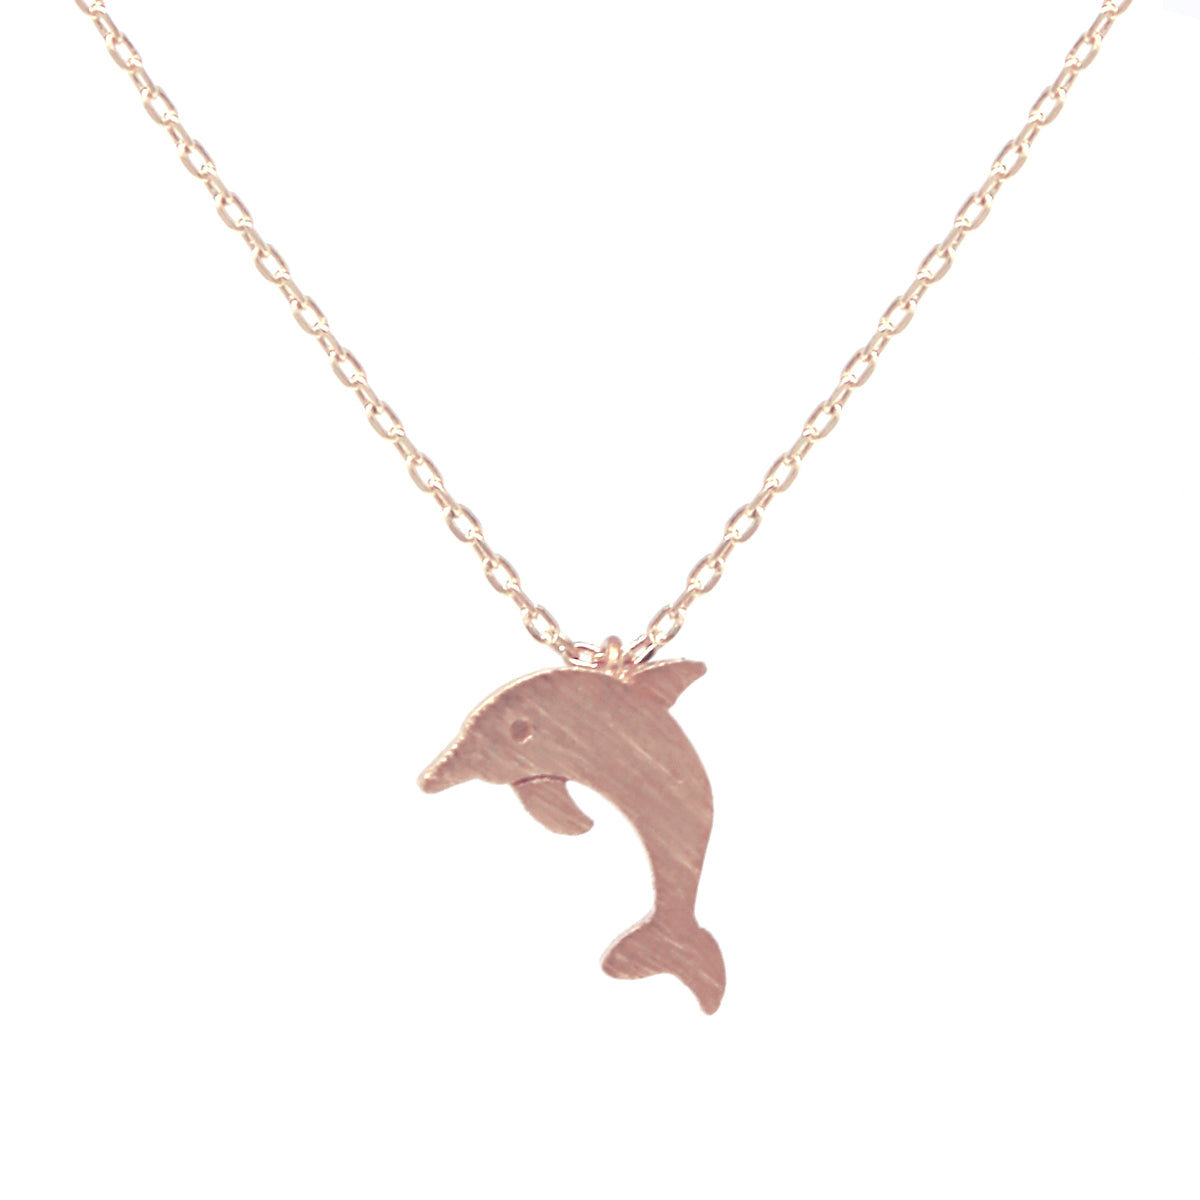 Dolphin Brushed Metal Pendant Simple Chain Short Necklace